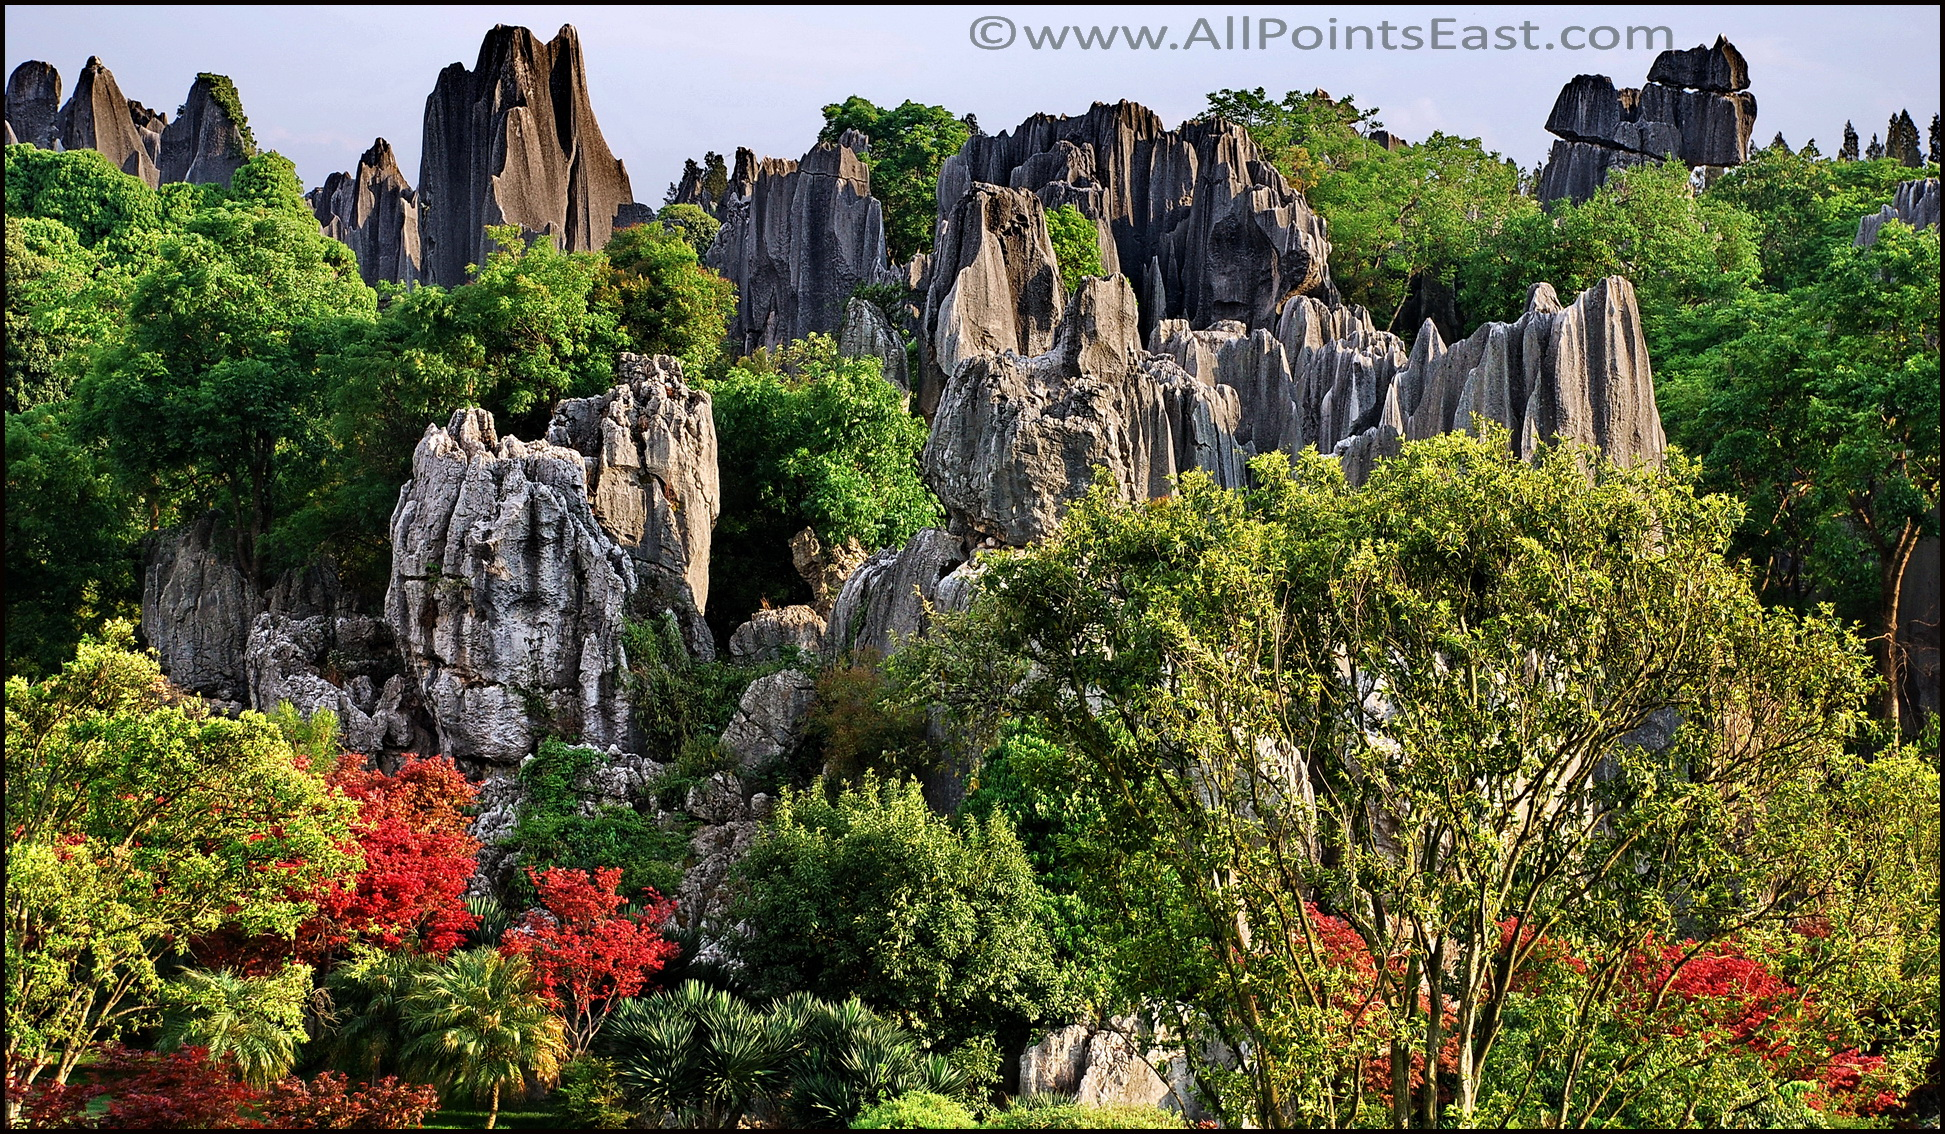 Lush vegetation amongst the rocks